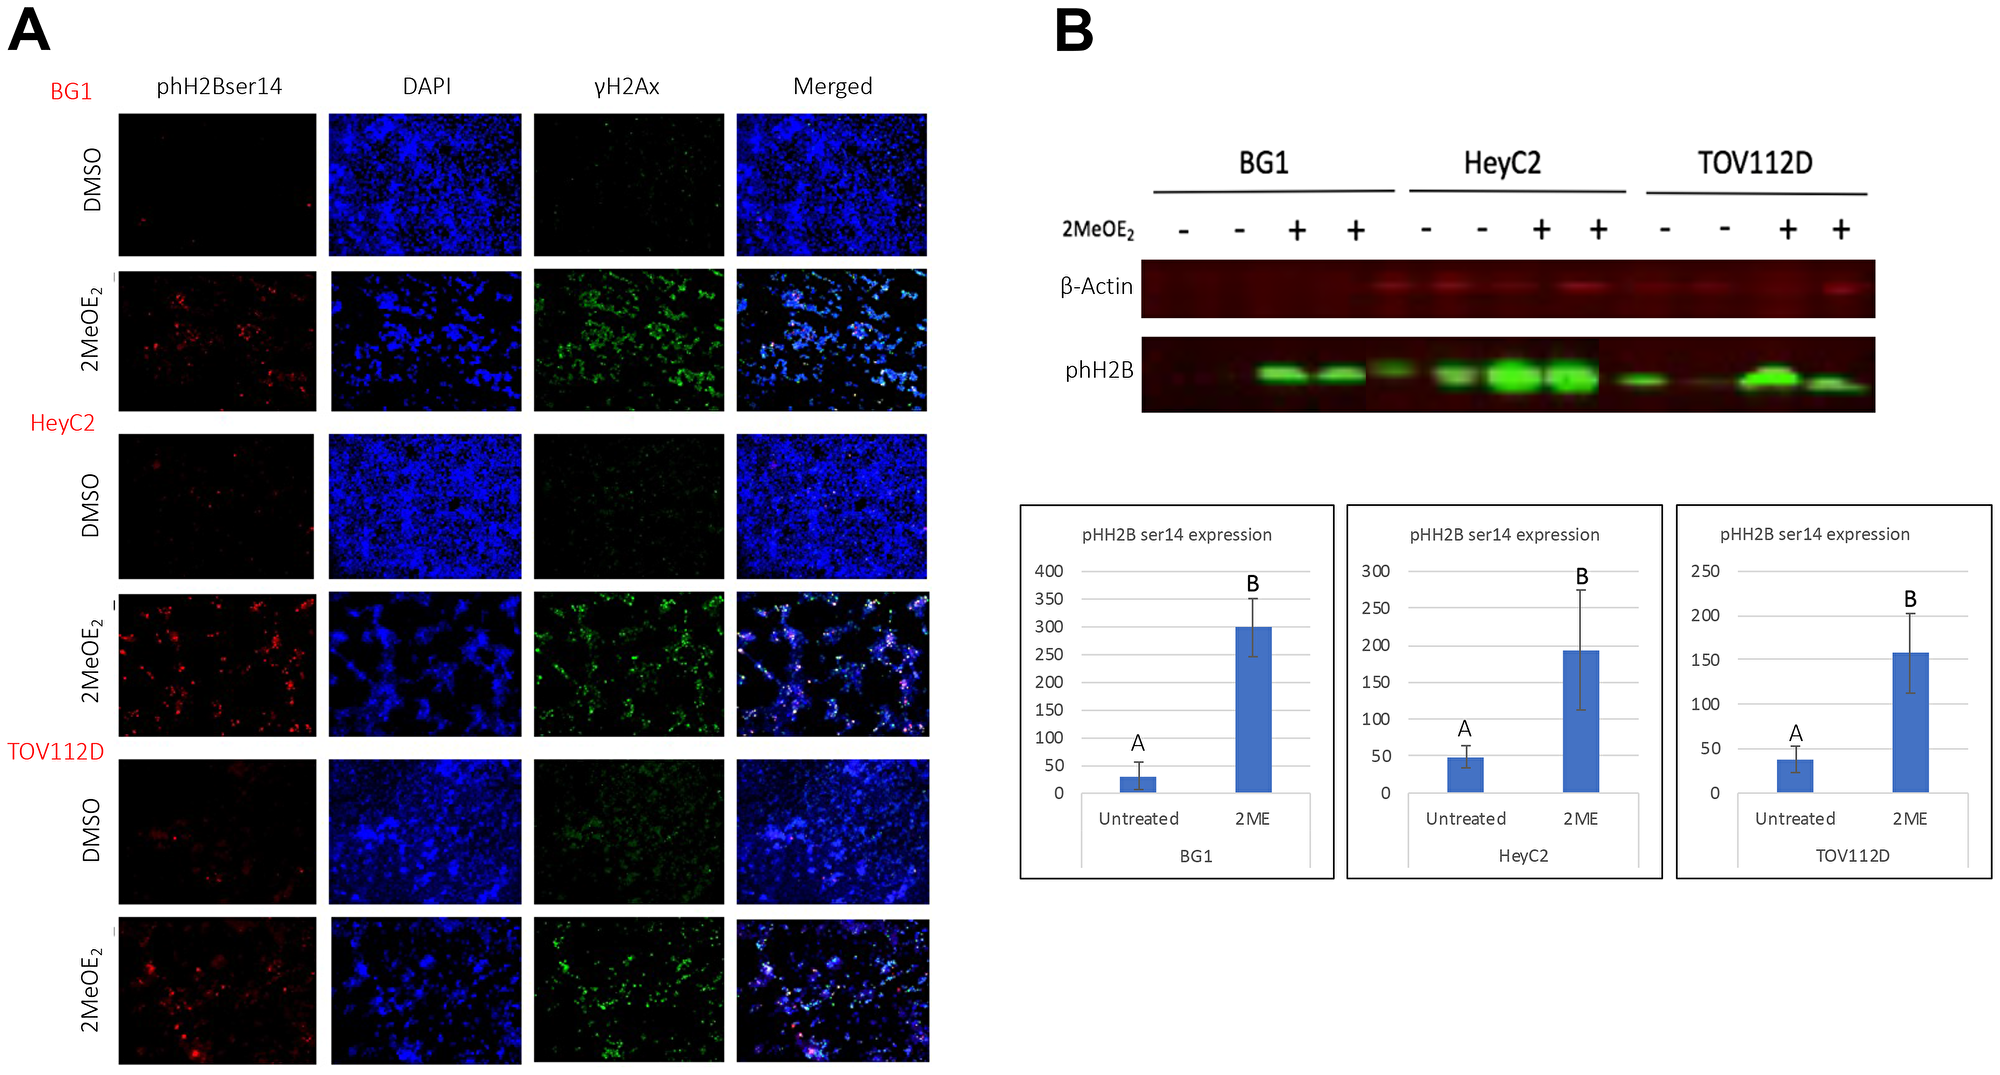 2MeOE2 induces phosphorylation on ser 14 of histone H2B in human ovarian cancer cells.